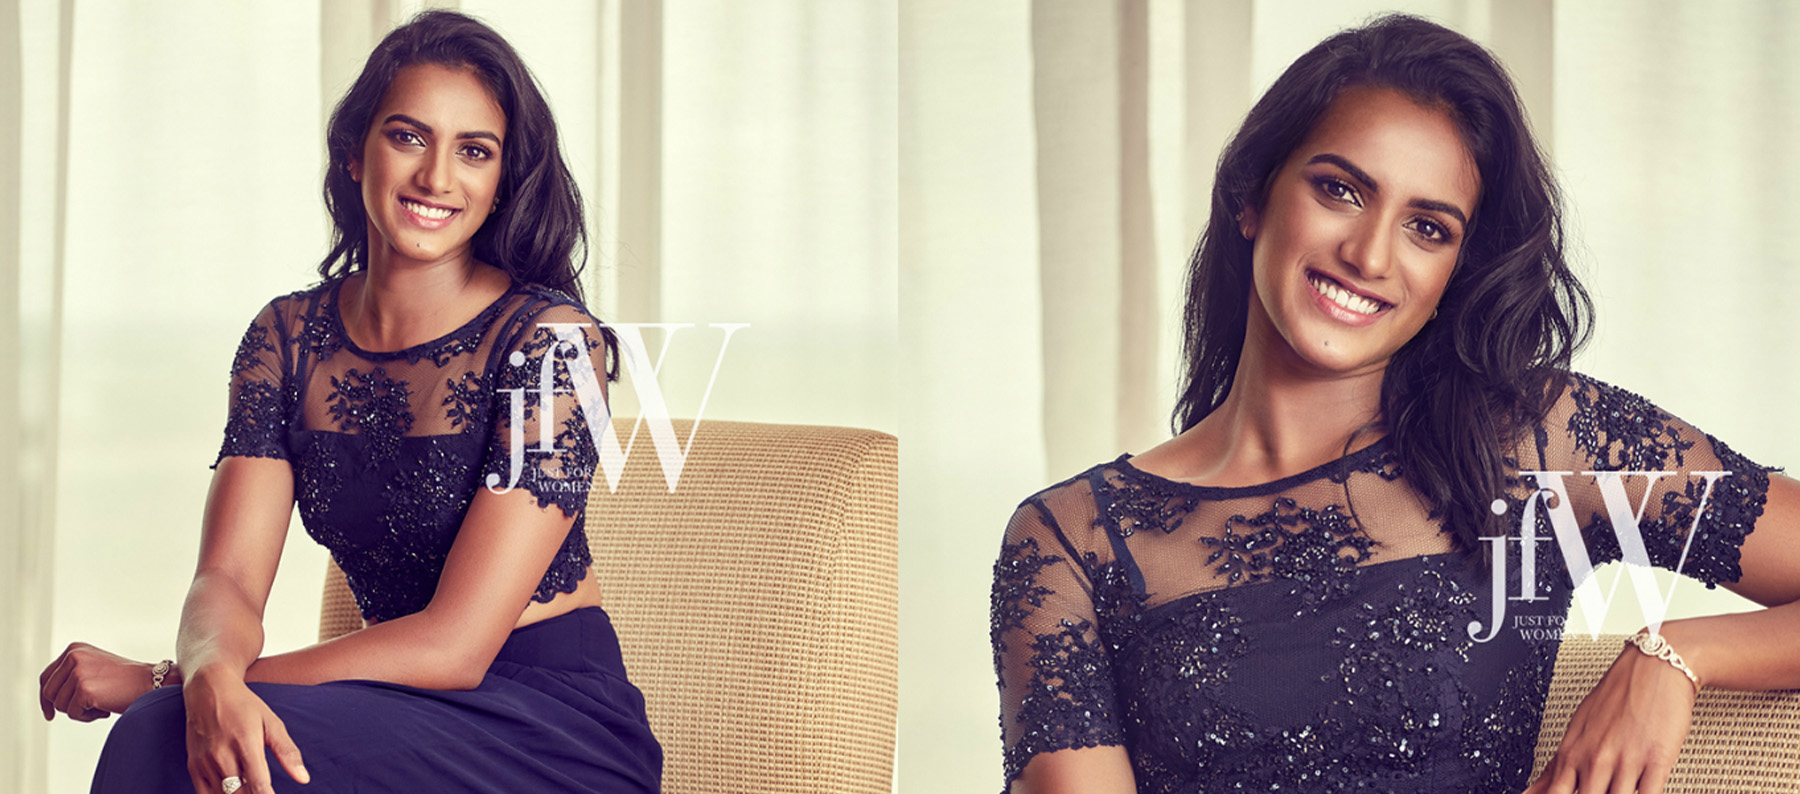 pv-sindhu-jfw-cover-shoot-banner